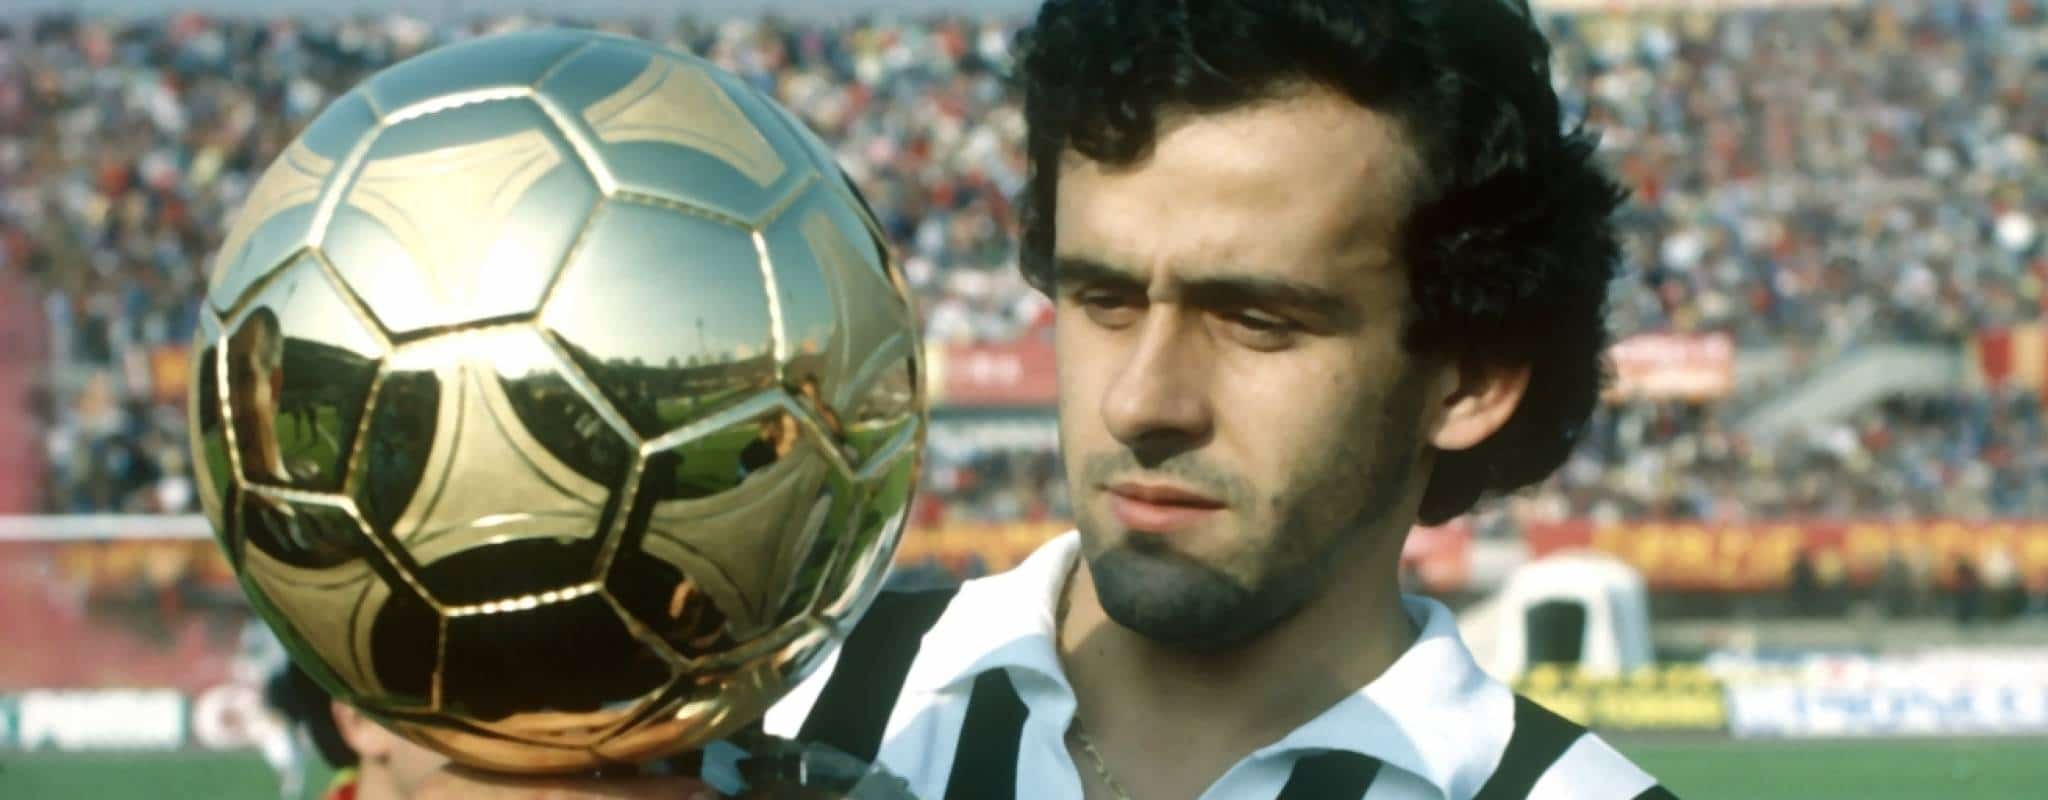 Michel Platini Ballon d'or 1985